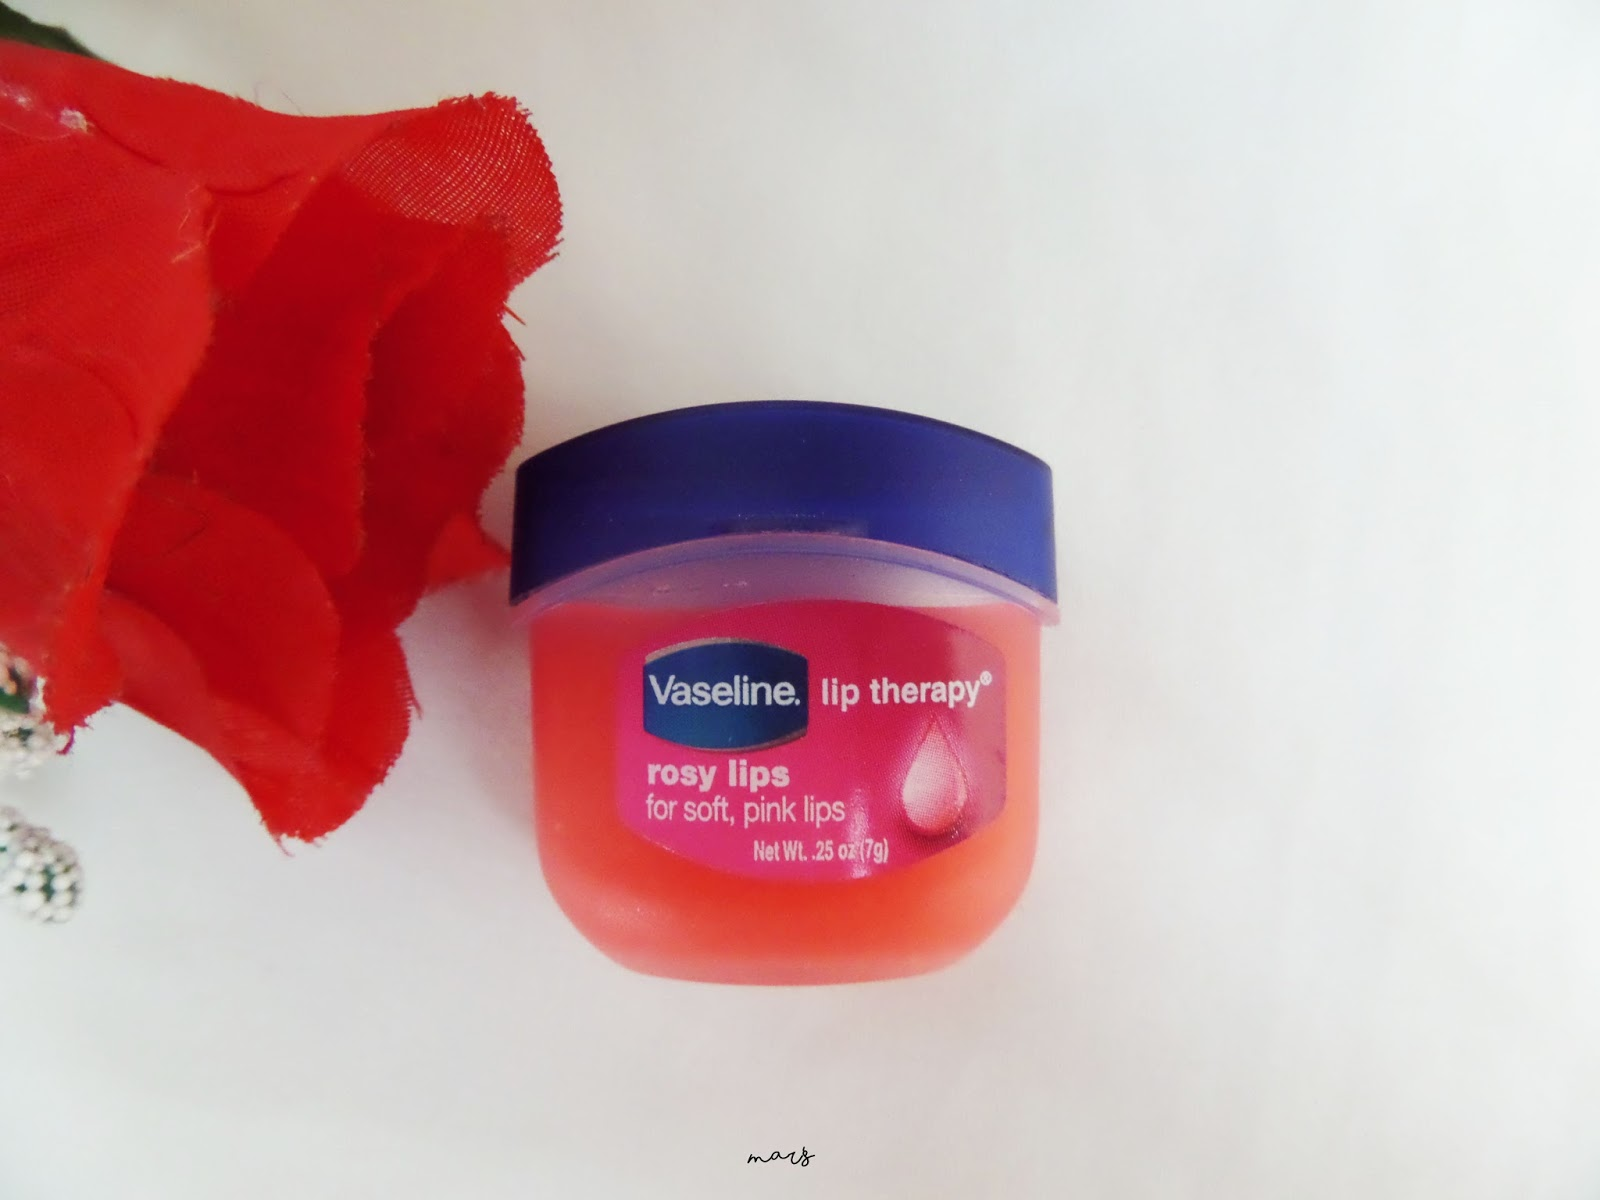 REVIEW: Vaseline Lip Therapy Rosy Lips - My Lips Essential